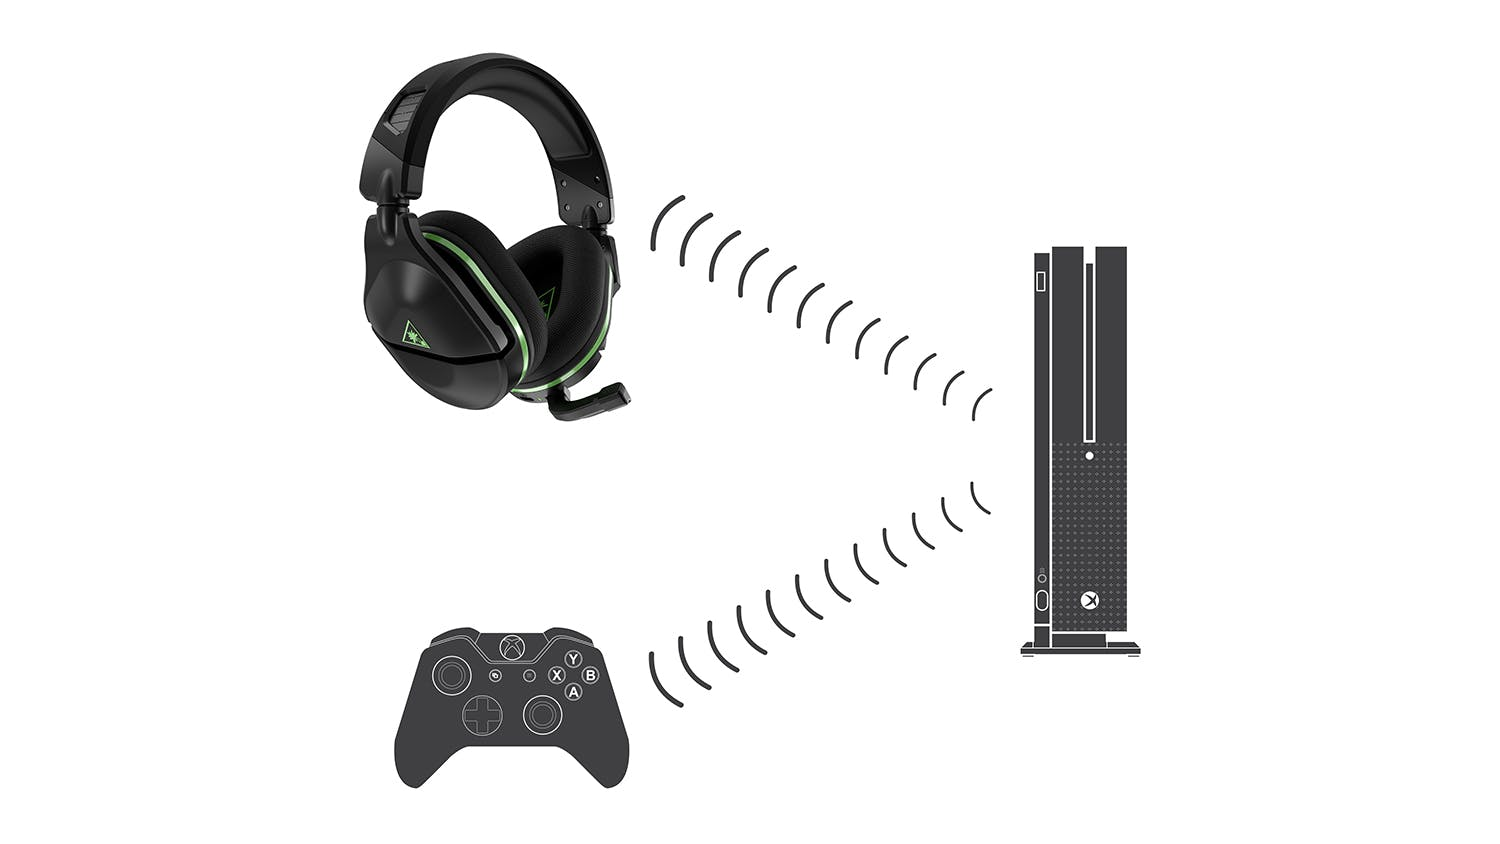 Turtle Beach Stealth 600X (Gen 2) Gaming Headset for Xbox - Black